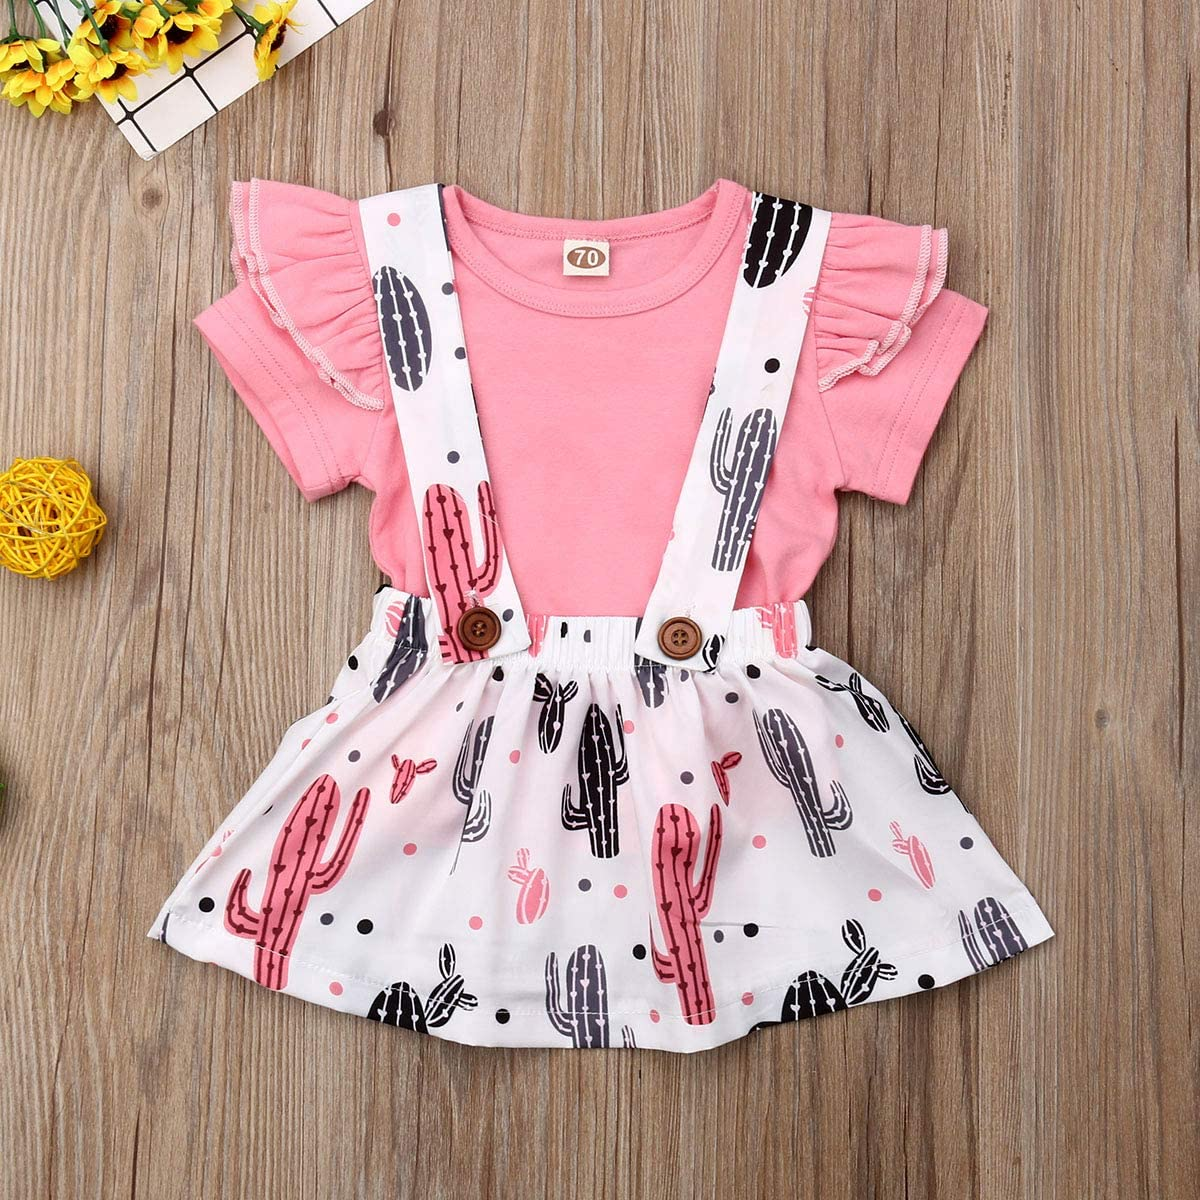 Jimanyang Newborn Infant Baby Girl Short Sleeve Ruffled T-Shirt Cactus Print Suspender Skirt Set 0-24 Months